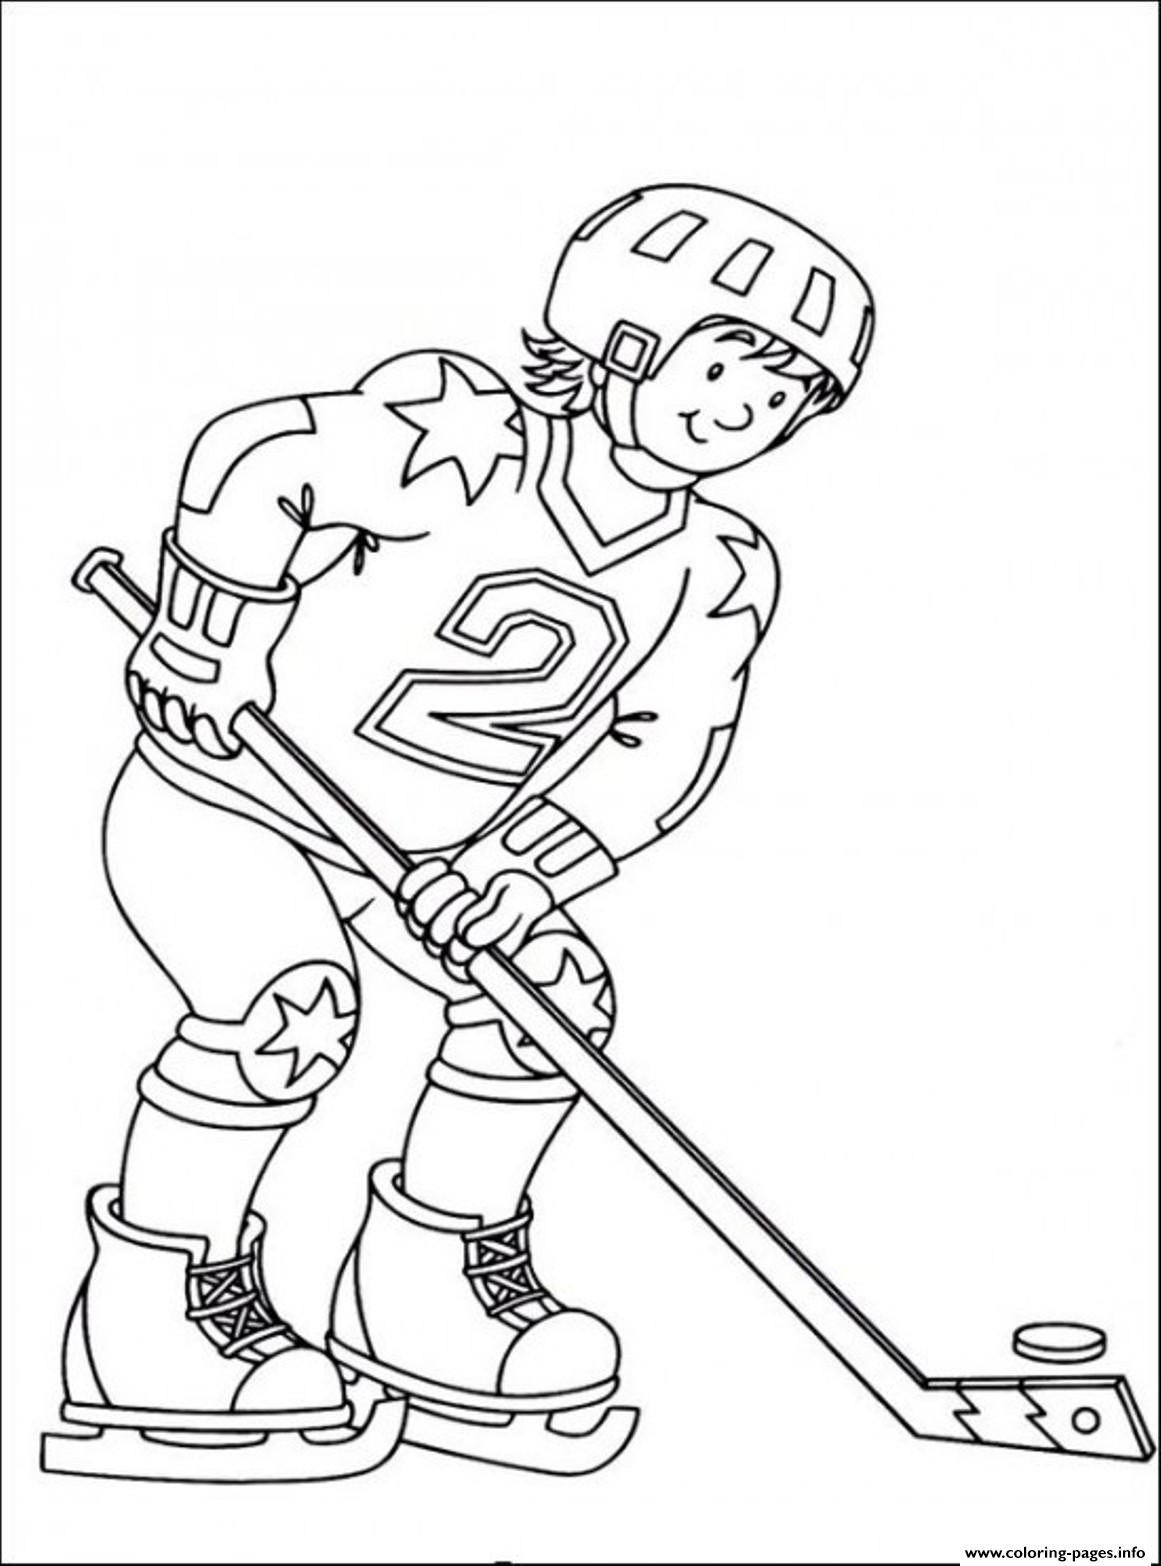 Free Hockey Coloring Pages For Kids  Hockey Sedbd Coloring Pages Printable